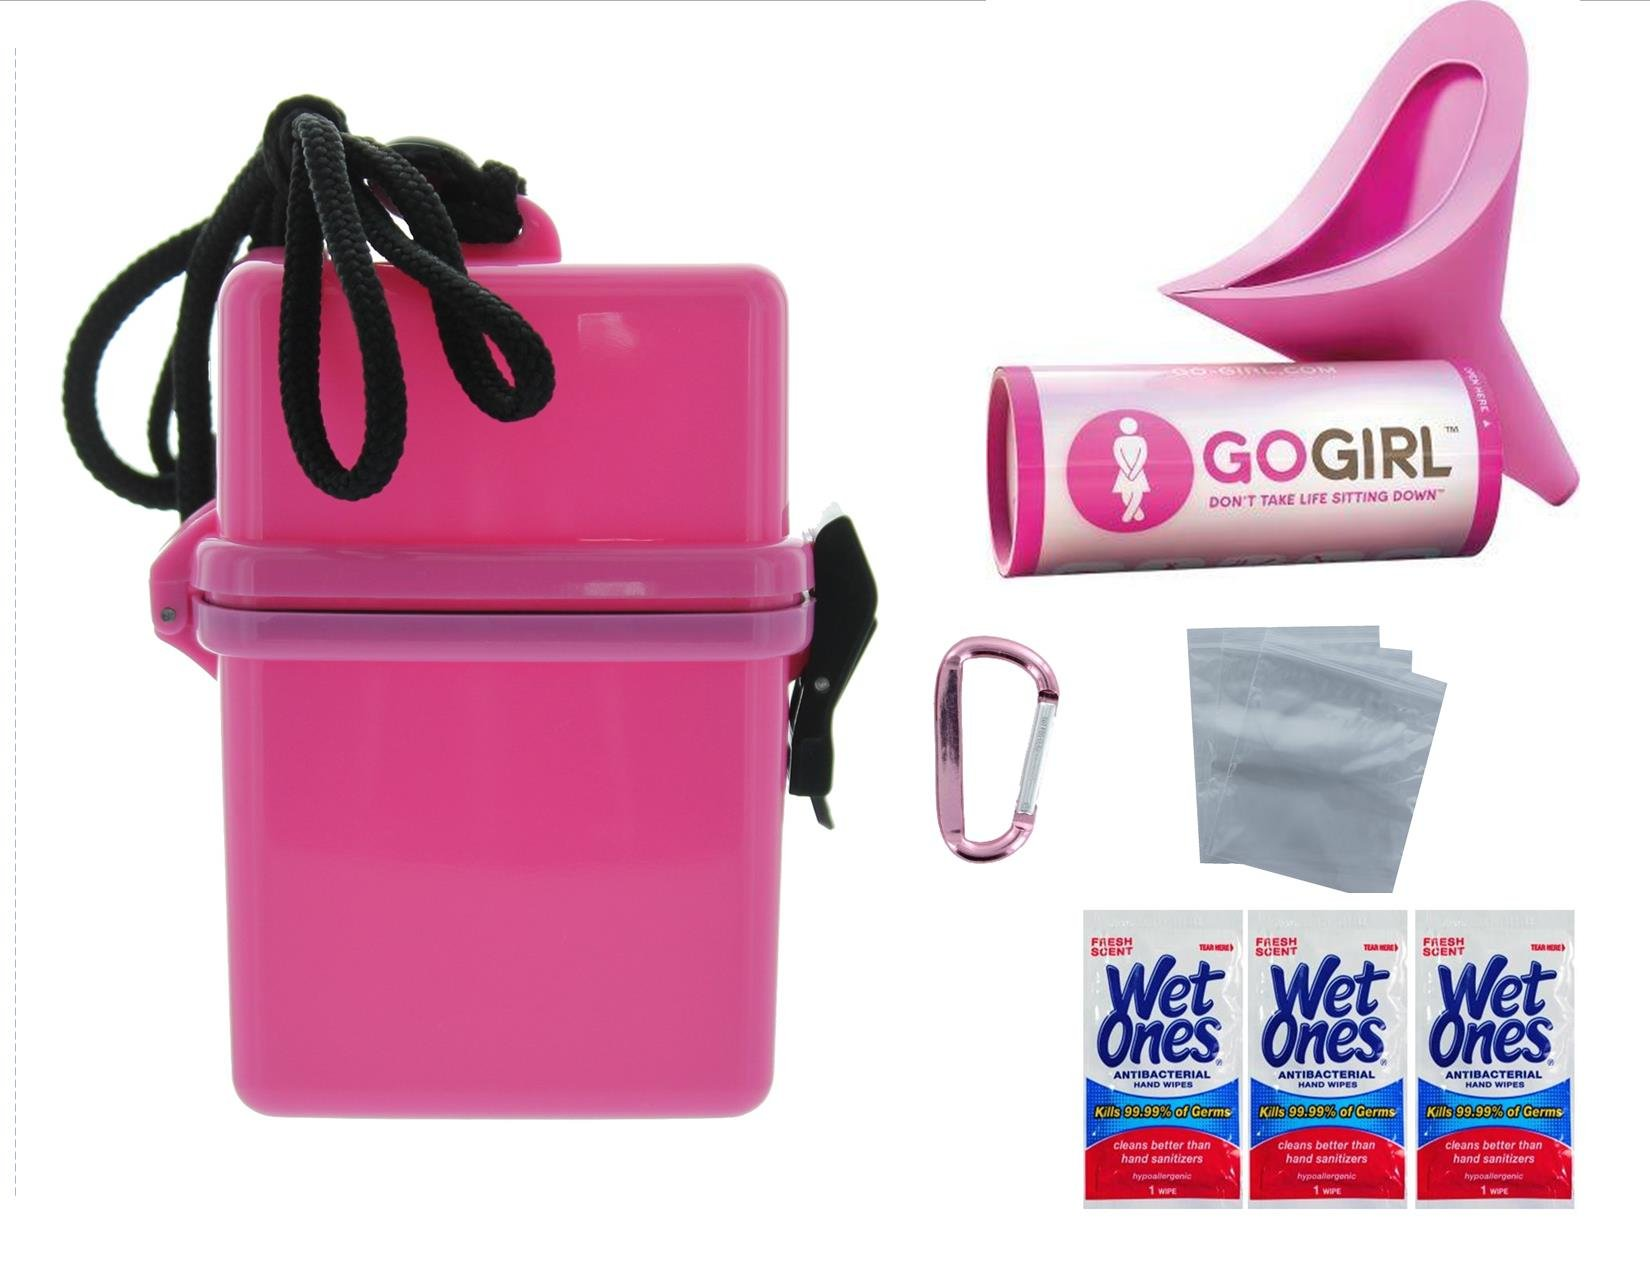 GO GIRL ALWAYS PRETTY IN EXTRA PINK FEMALE URINATION KIT - PINK CARABINER